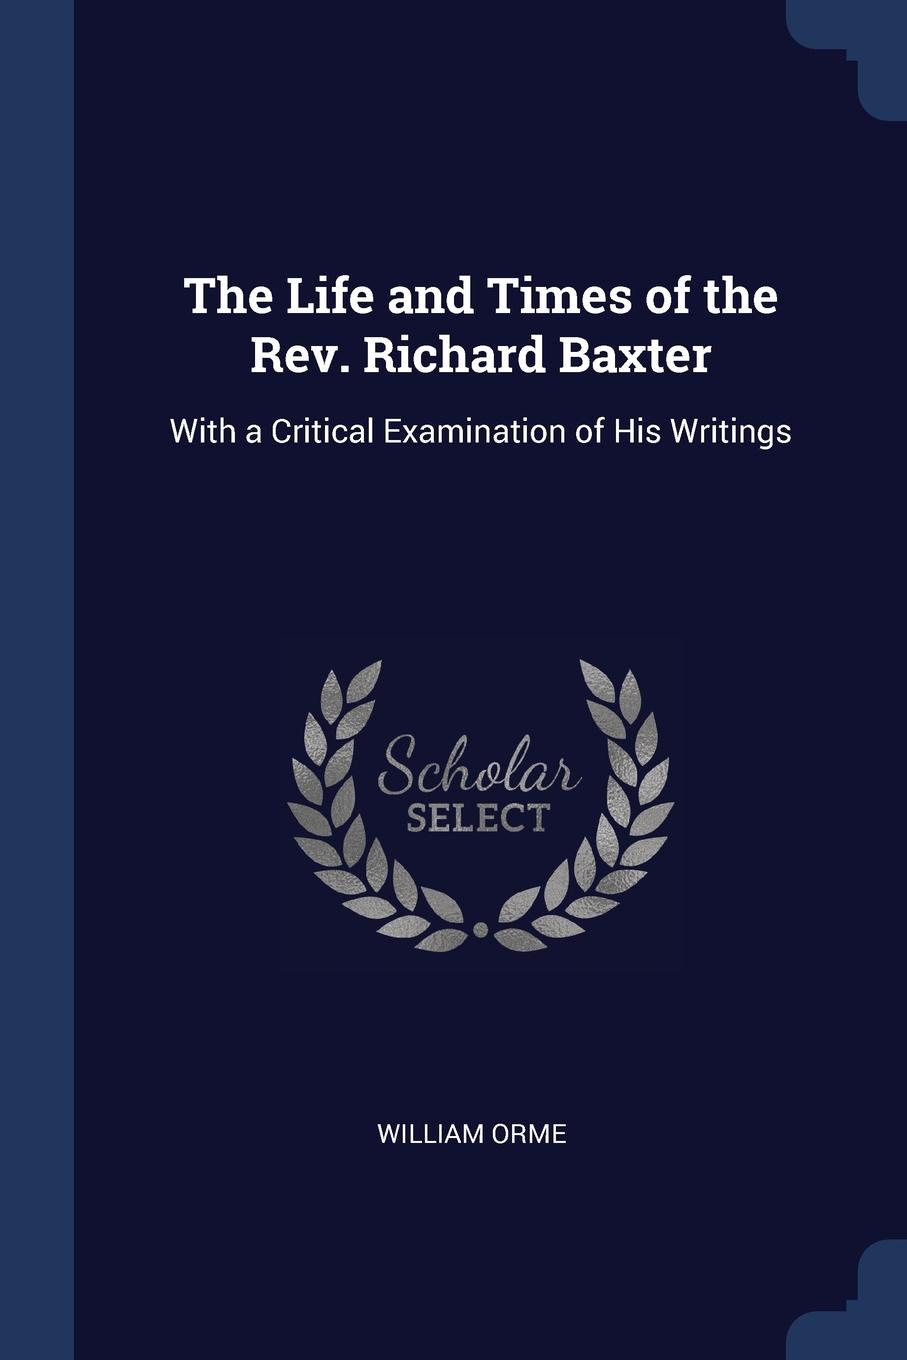 The Life and Times of the Rev. Richard Baxter. With a Critical Examination of His Writings. William Orme